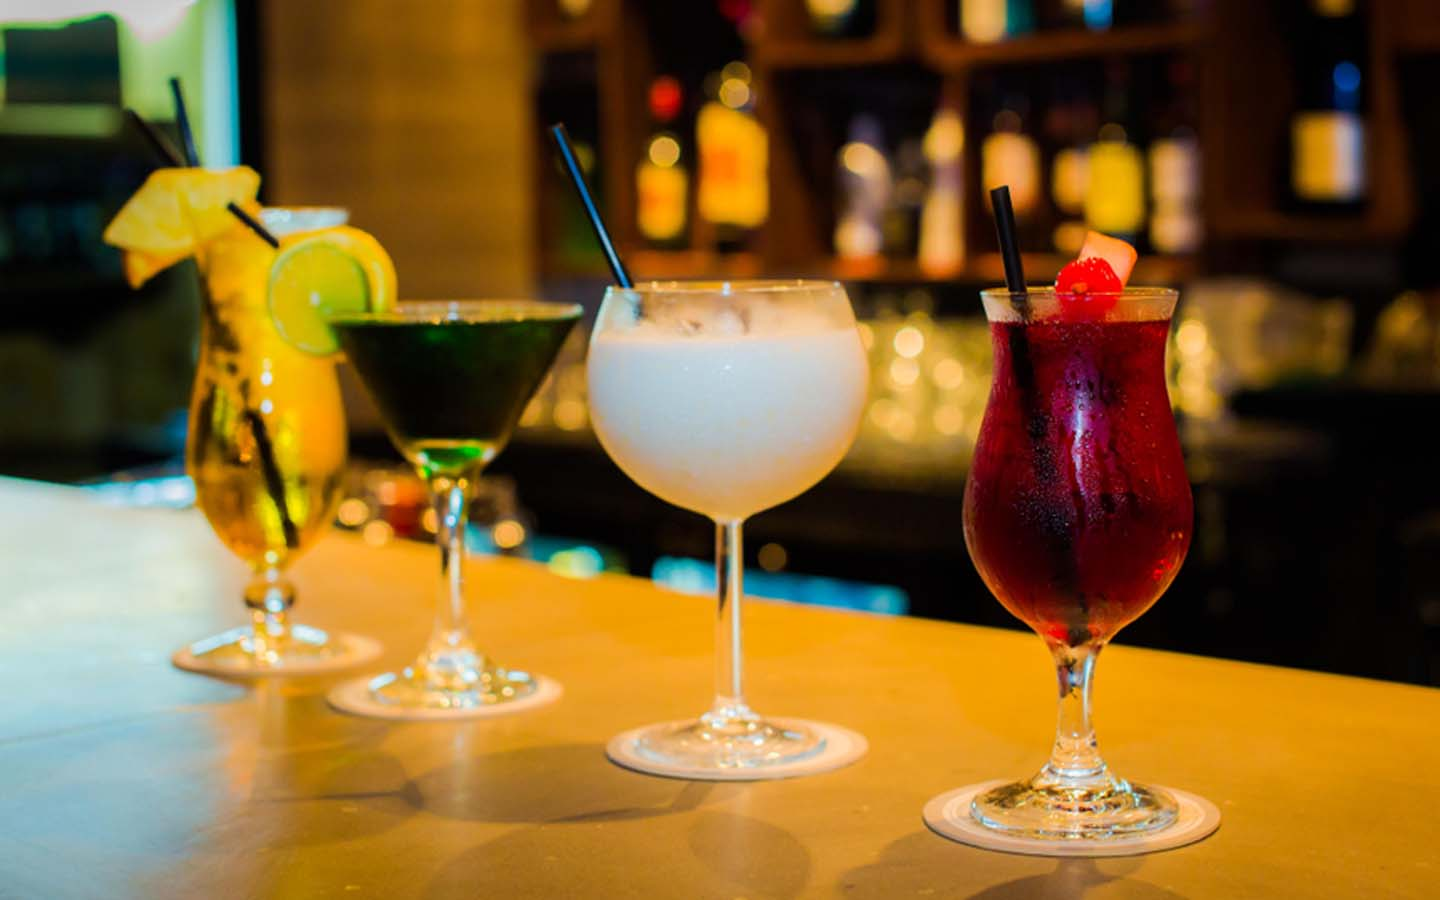 Different types of alcoholic cocktails at a bar